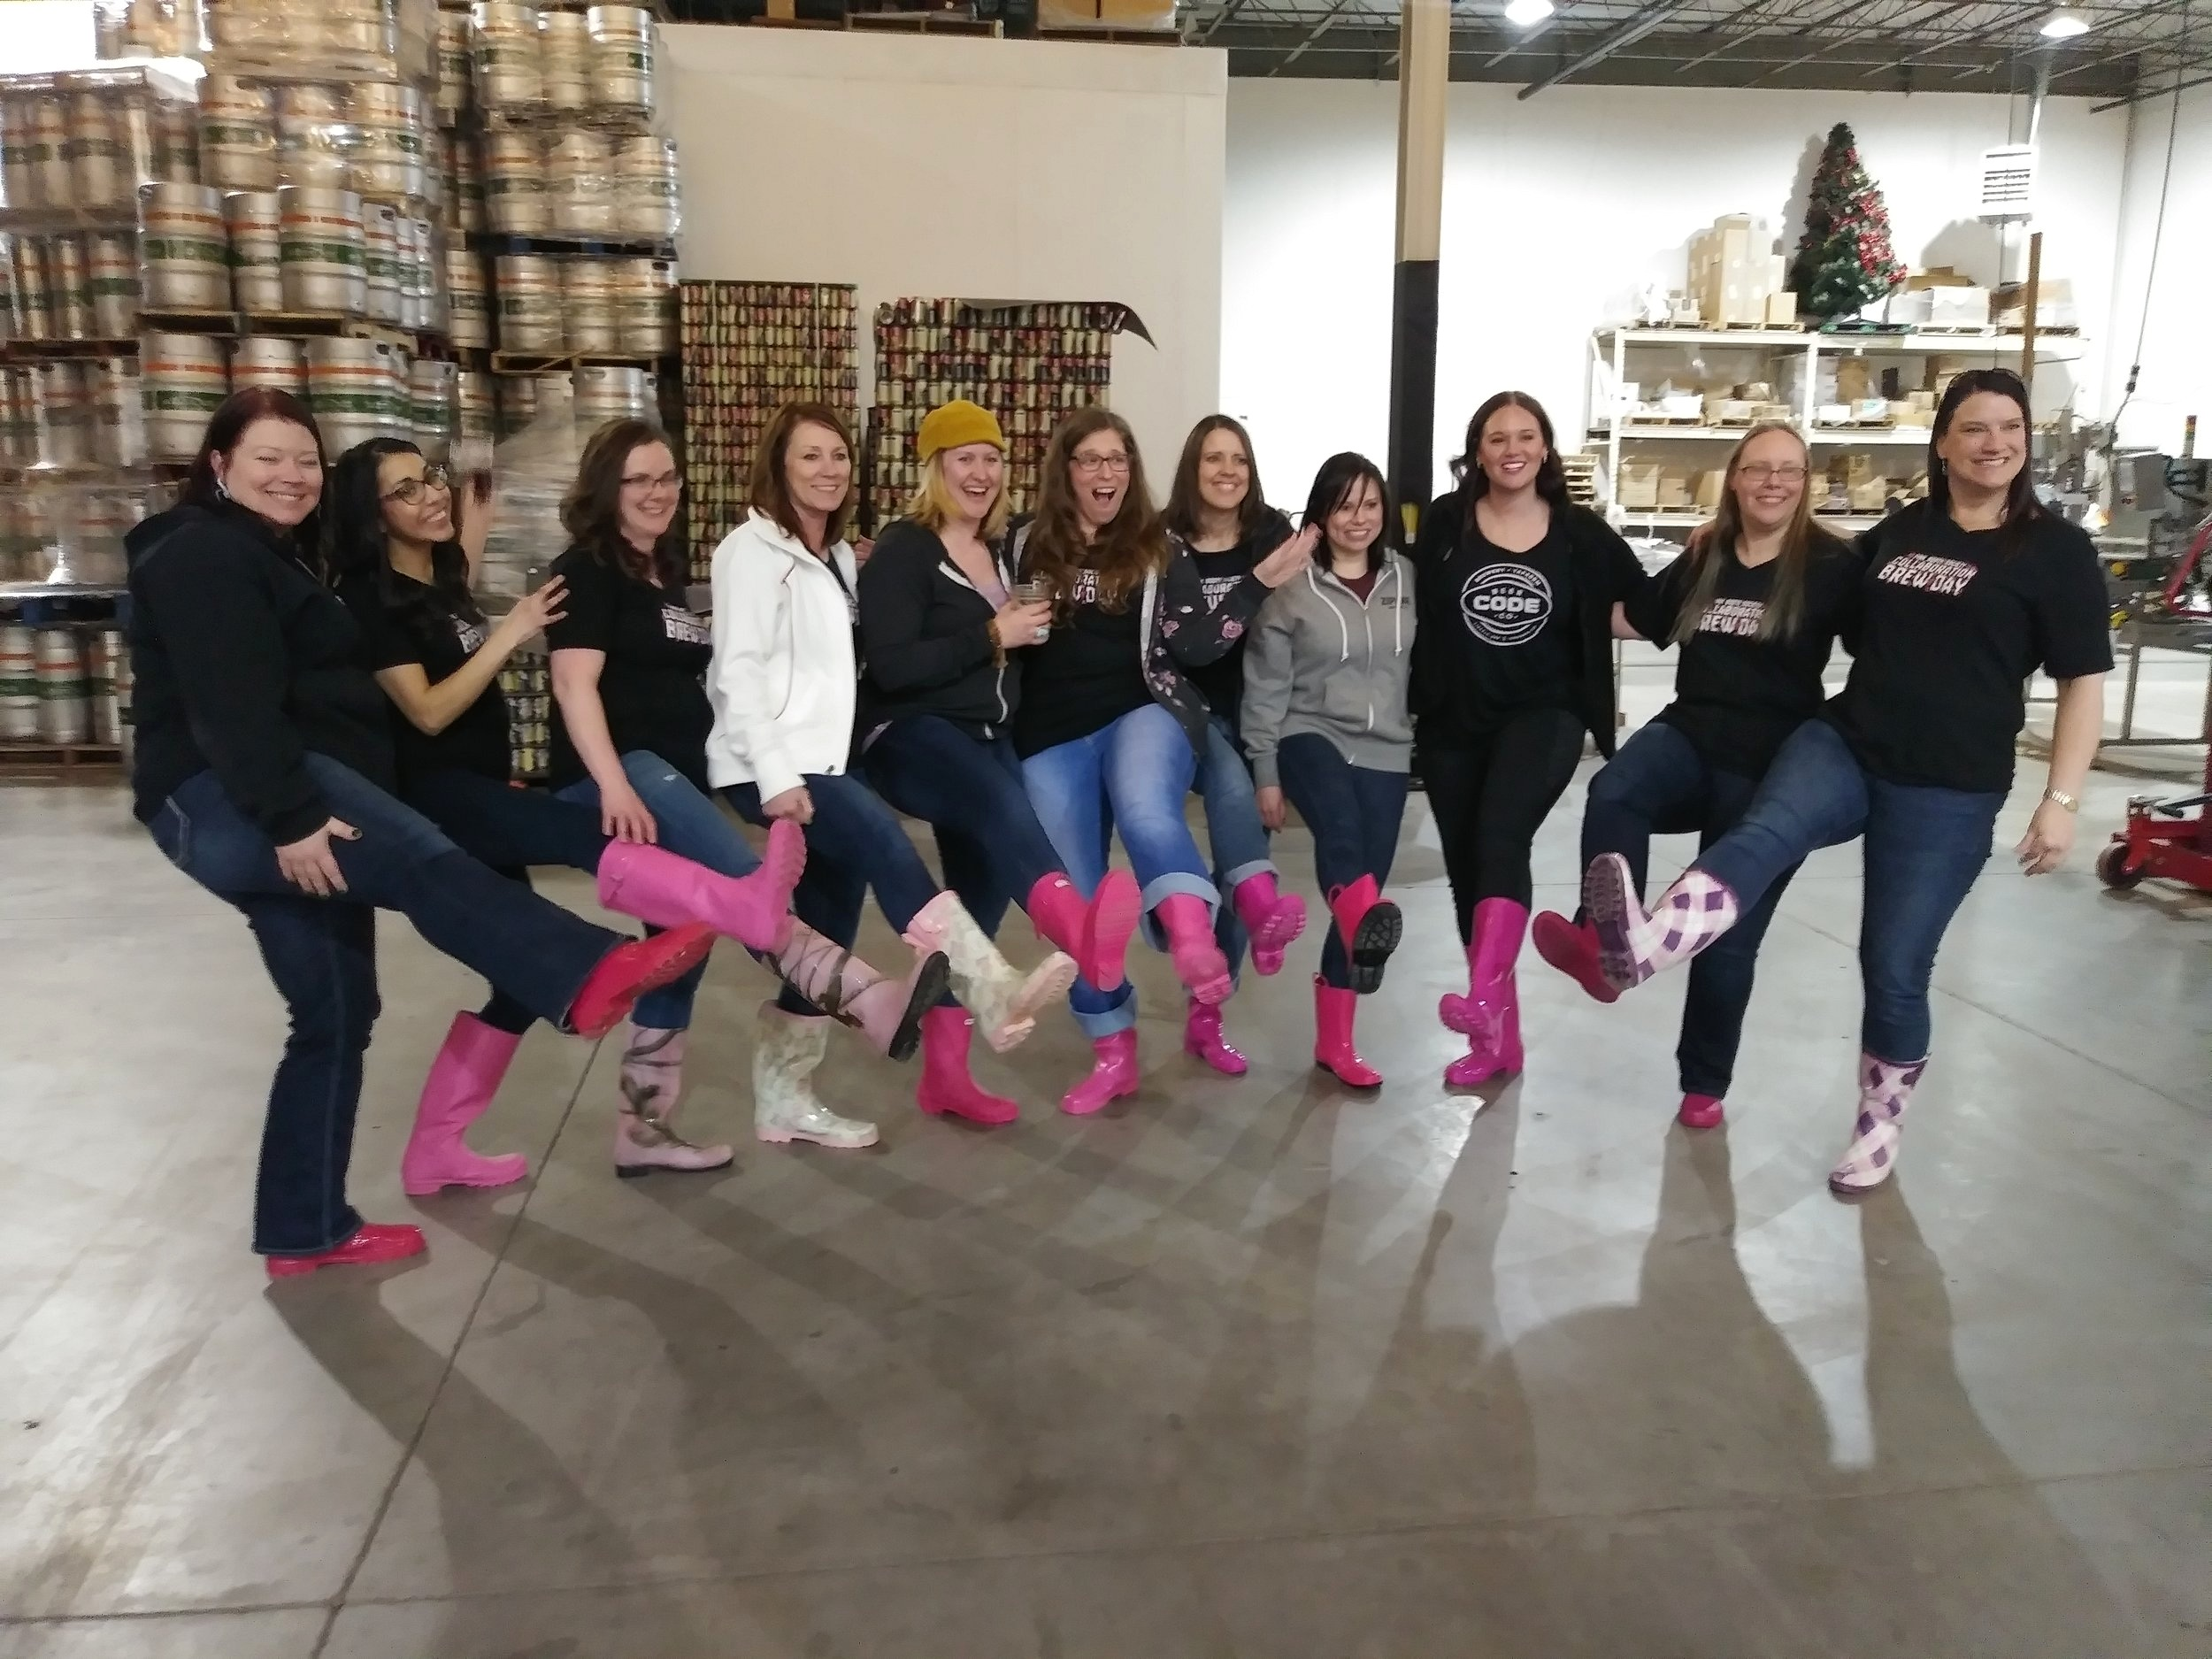 Wrapping up the First Nebraska Pink Boots Society Brew Day